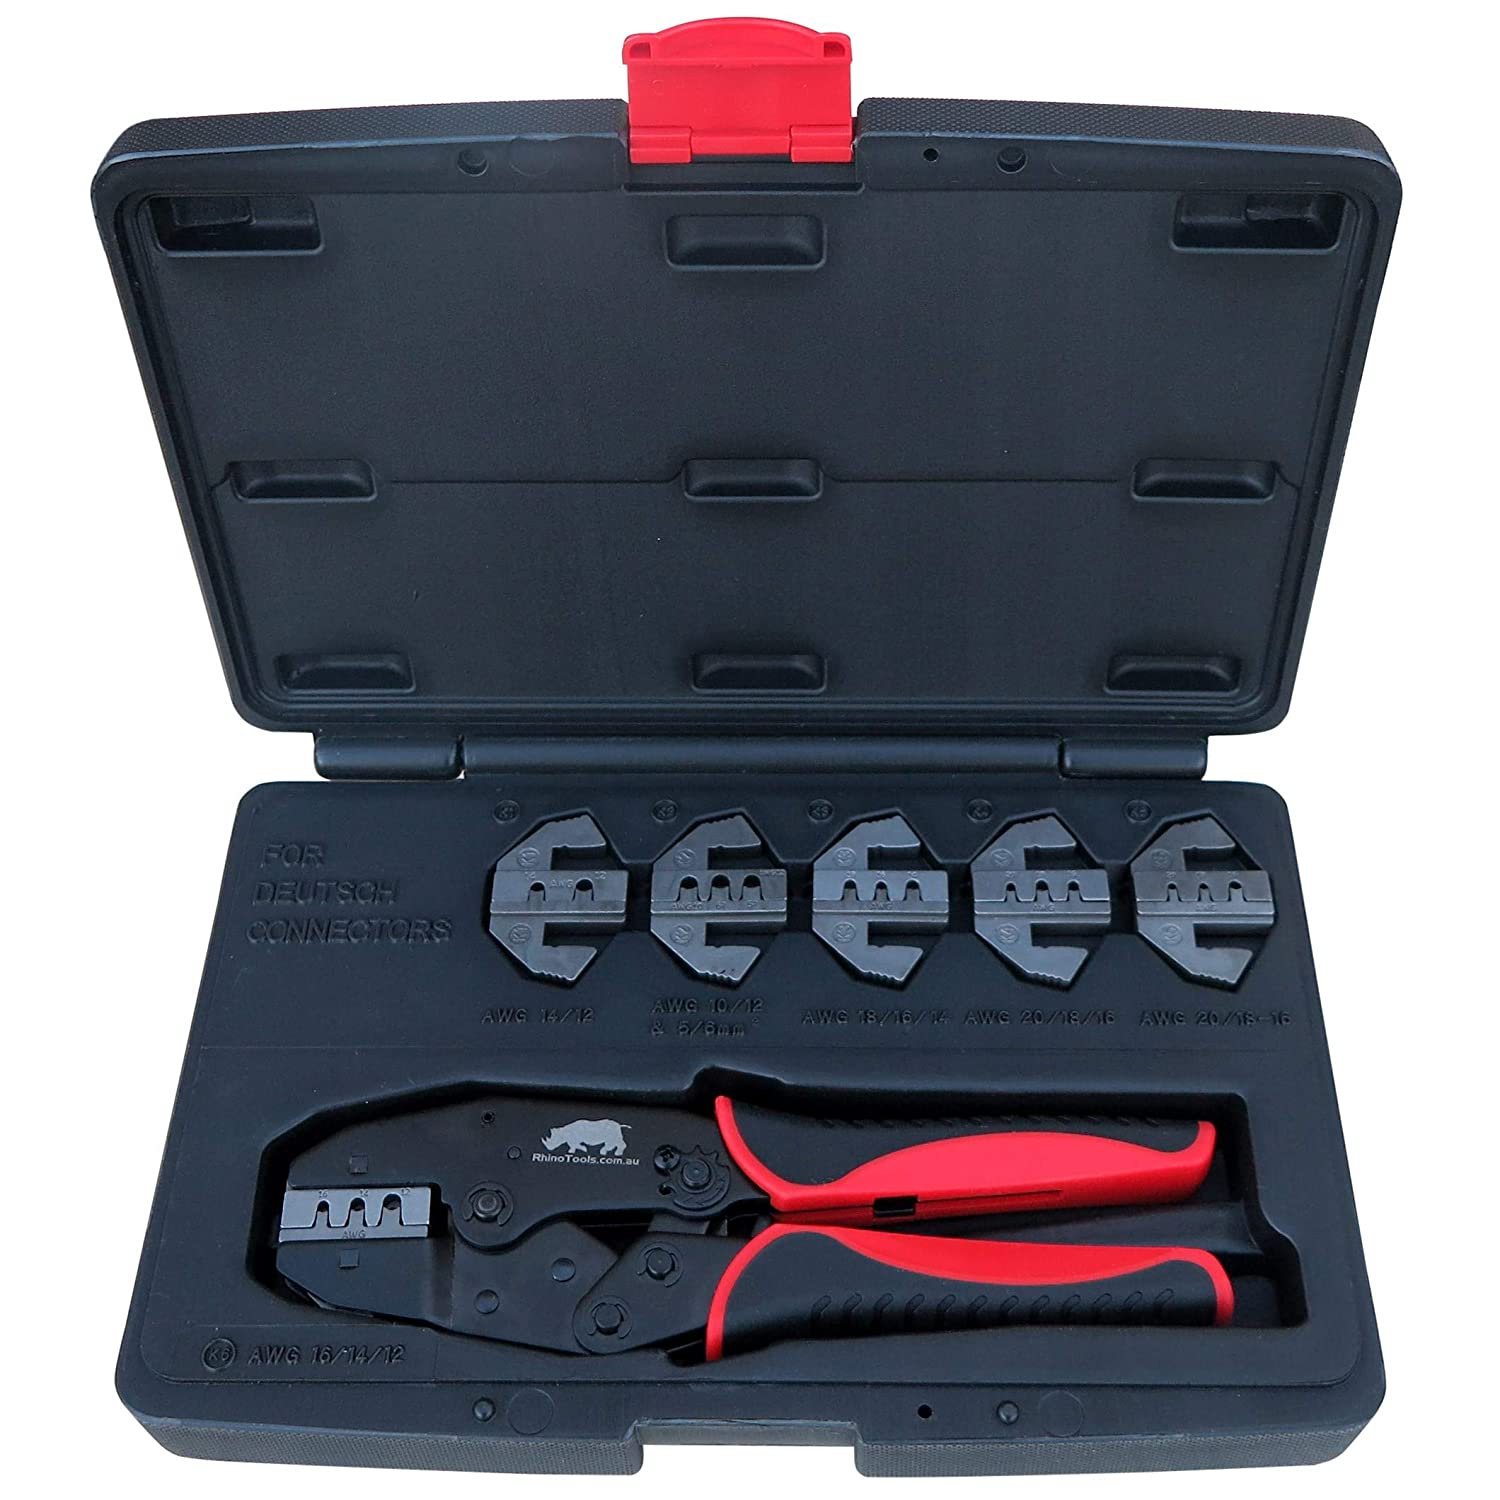 Deutsch Connector Crimping Kit 6 Die Quick Change Crimper for Stamped /& Formed Contacts Rhino Tools